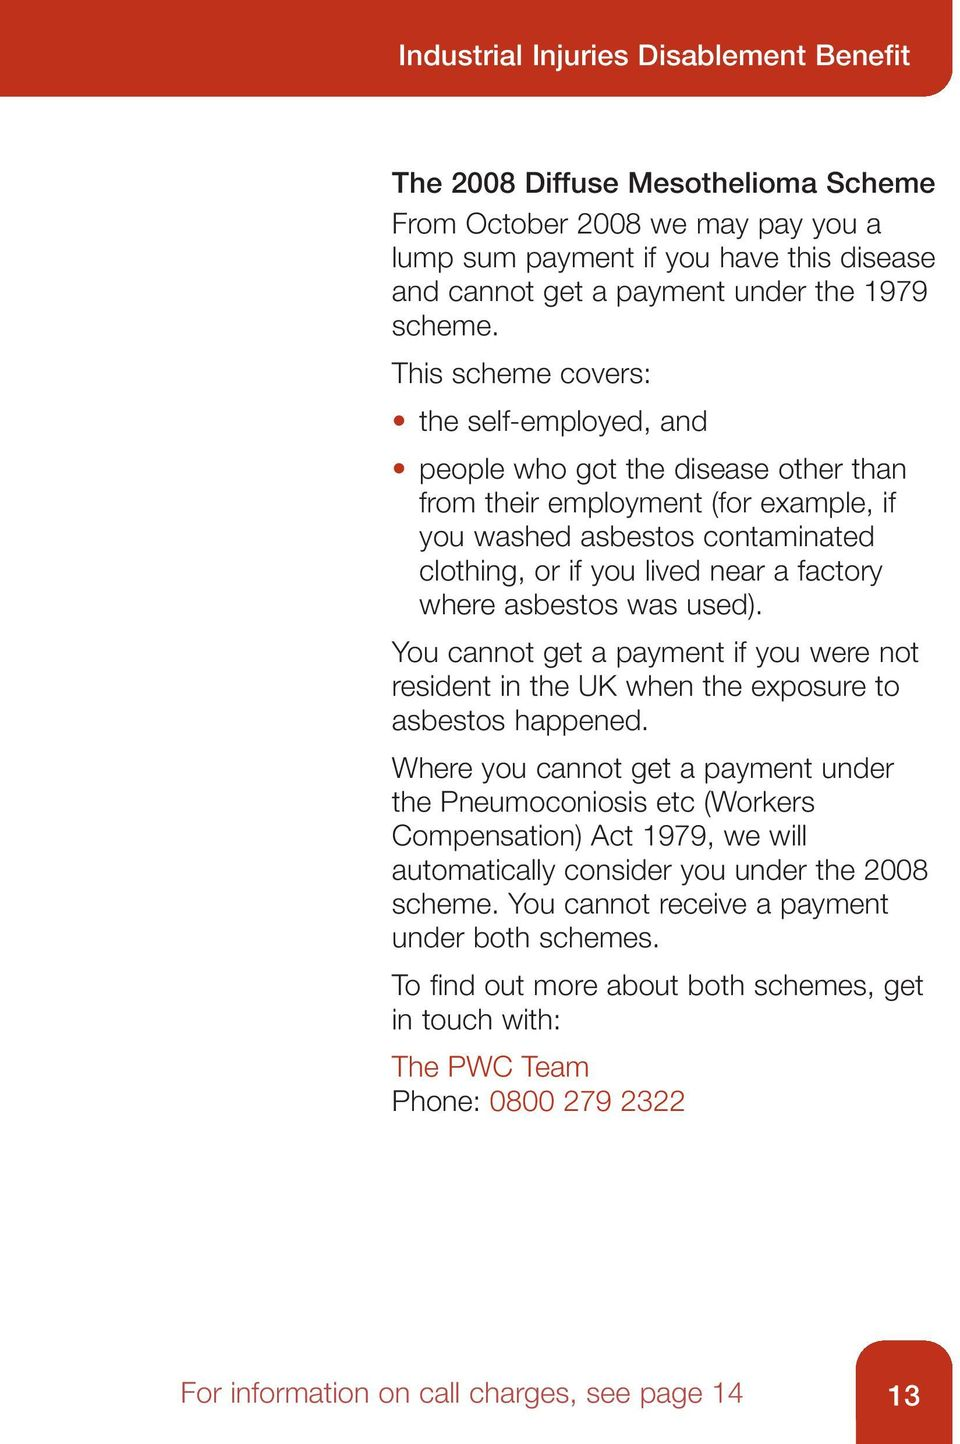 This scheme covers: the self-employed, and people who got the disease other than from their employment (for example, if you washed asbestos contaminated clothing, or if you lived near a factory where